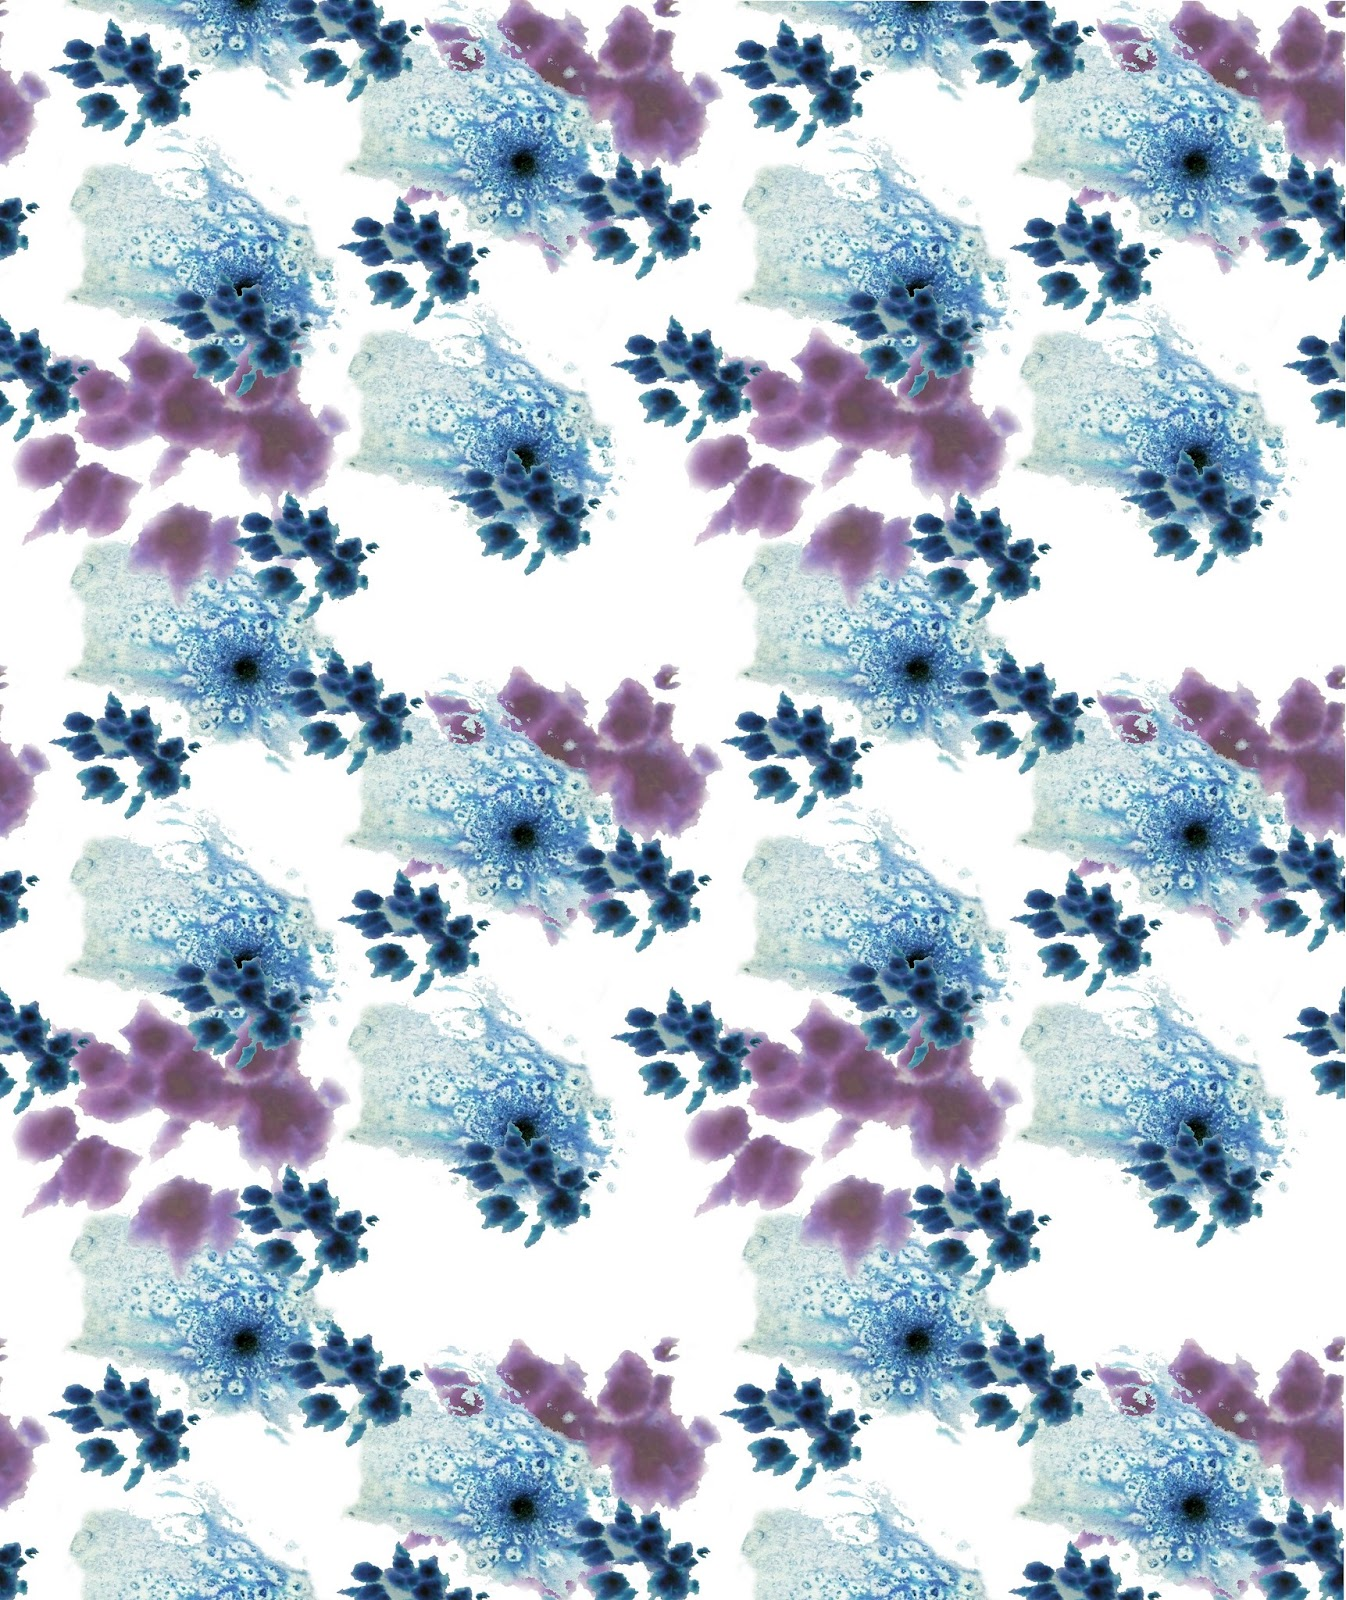 Displaying 16 Images For   Bold Floral Print Wallpaper 1346x1600